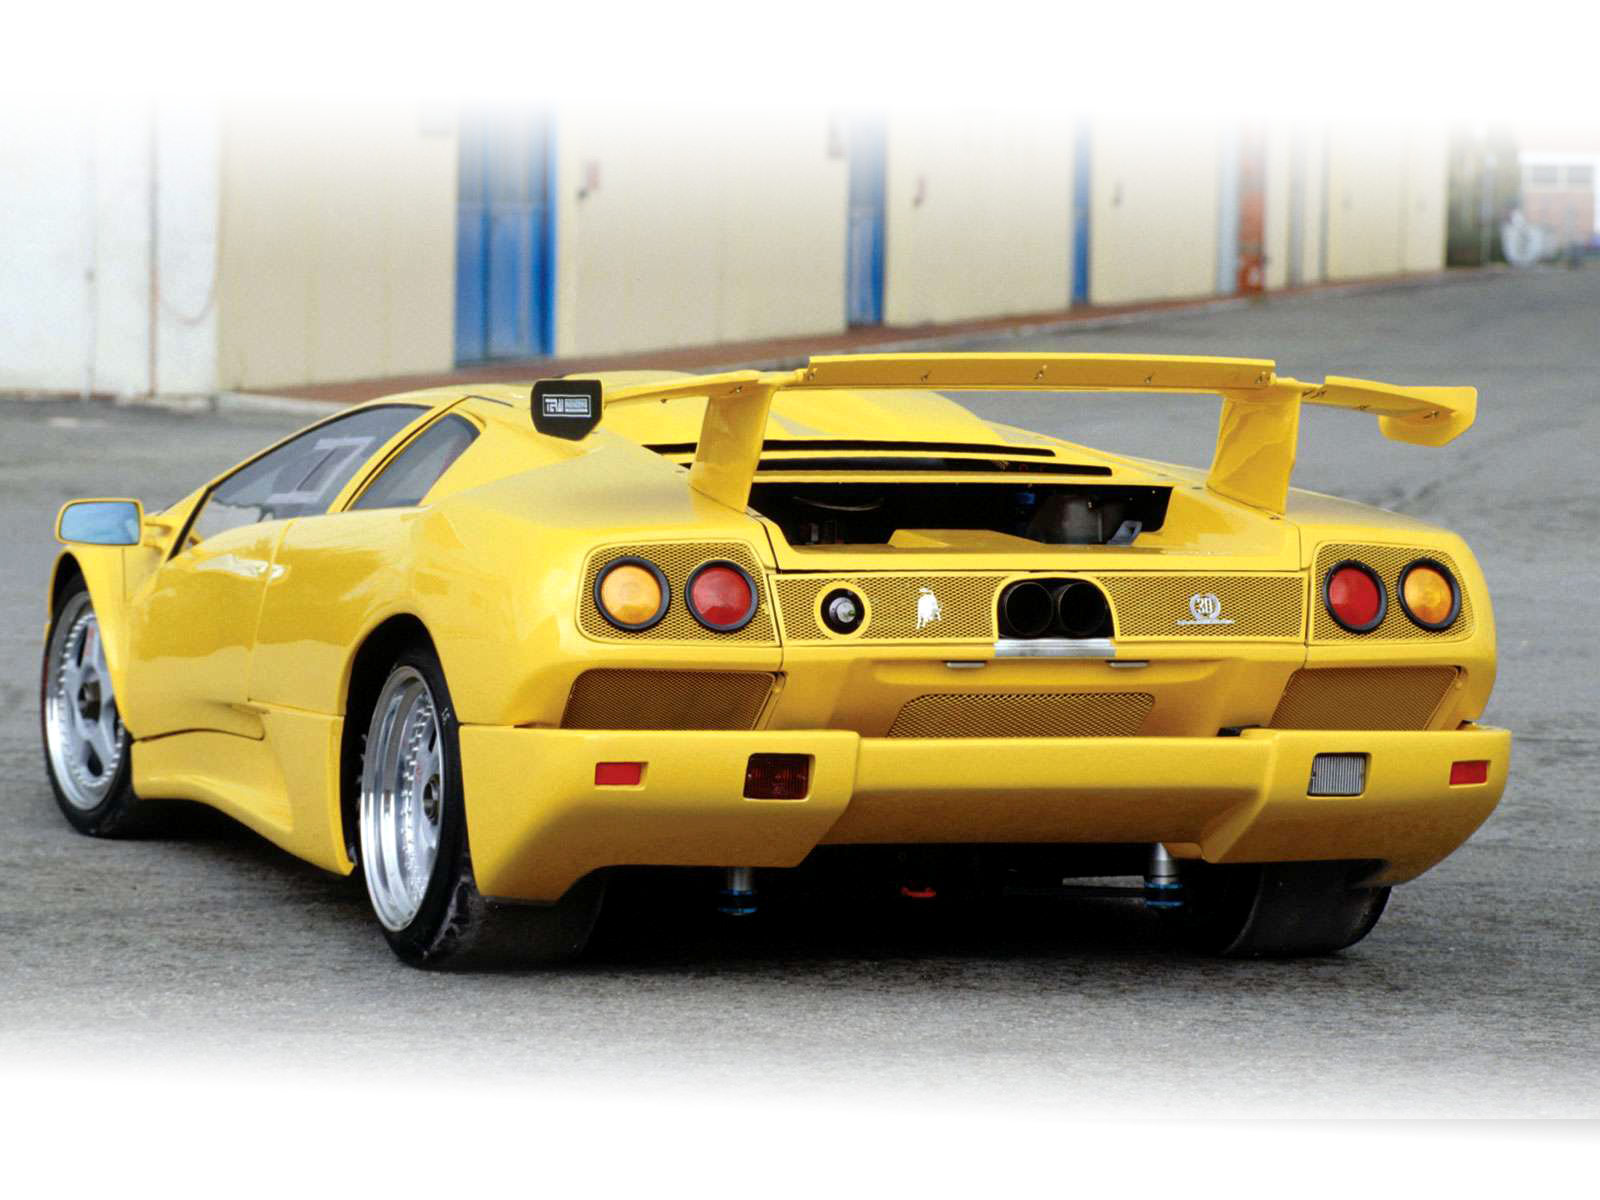 lamborghini wallpapers car accident lawyers 1995 lamborghini diablo iota pi. Black Bedroom Furniture Sets. Home Design Ideas